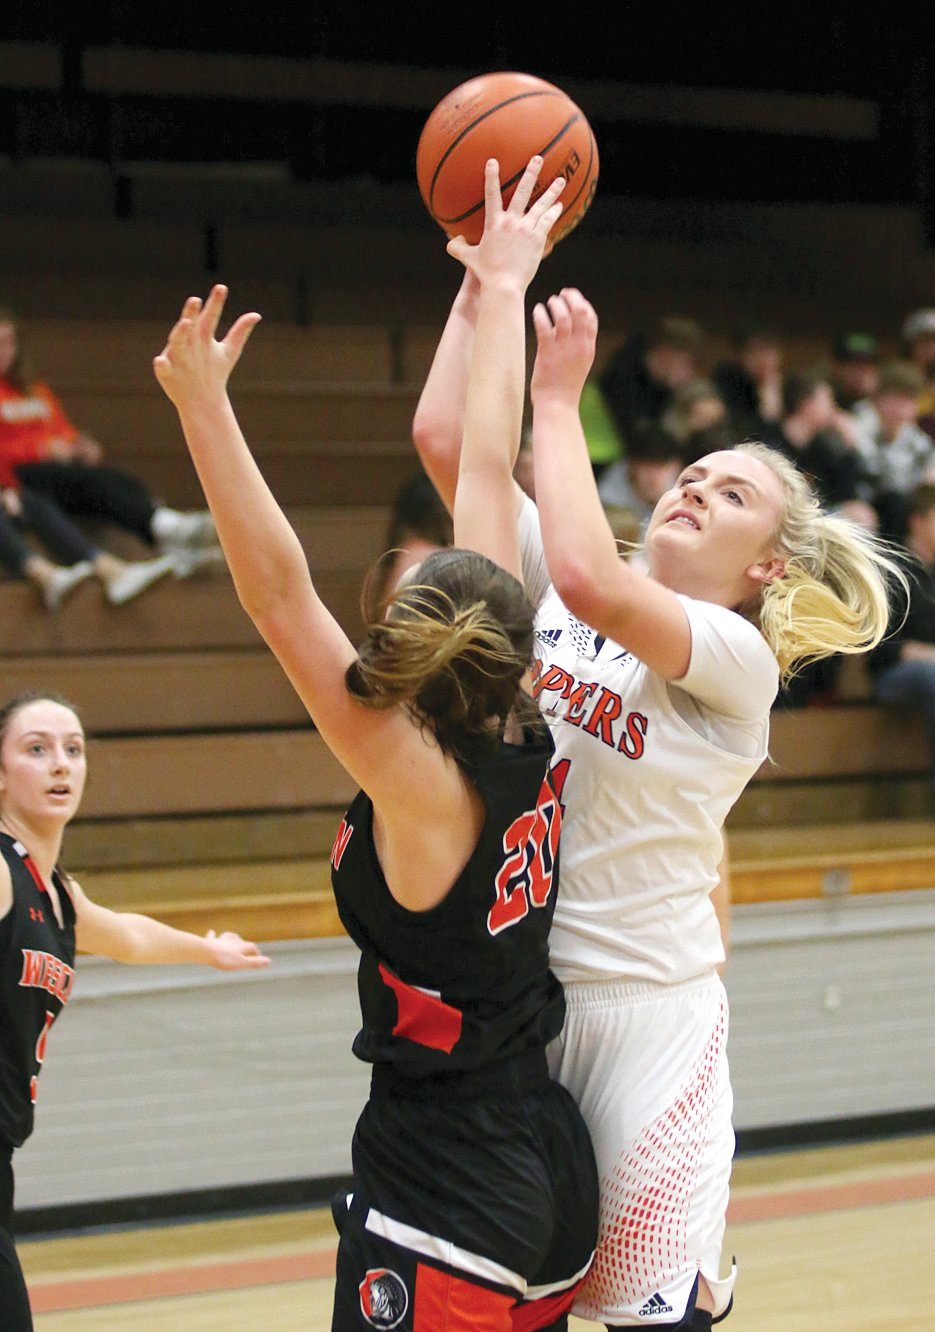 Claire Tester had ten points in Hillsboro's win over Wesclin on Monday, Jan. 13, including six in the fourth quarter that helped the Toppers solidify their 61-46 victory.